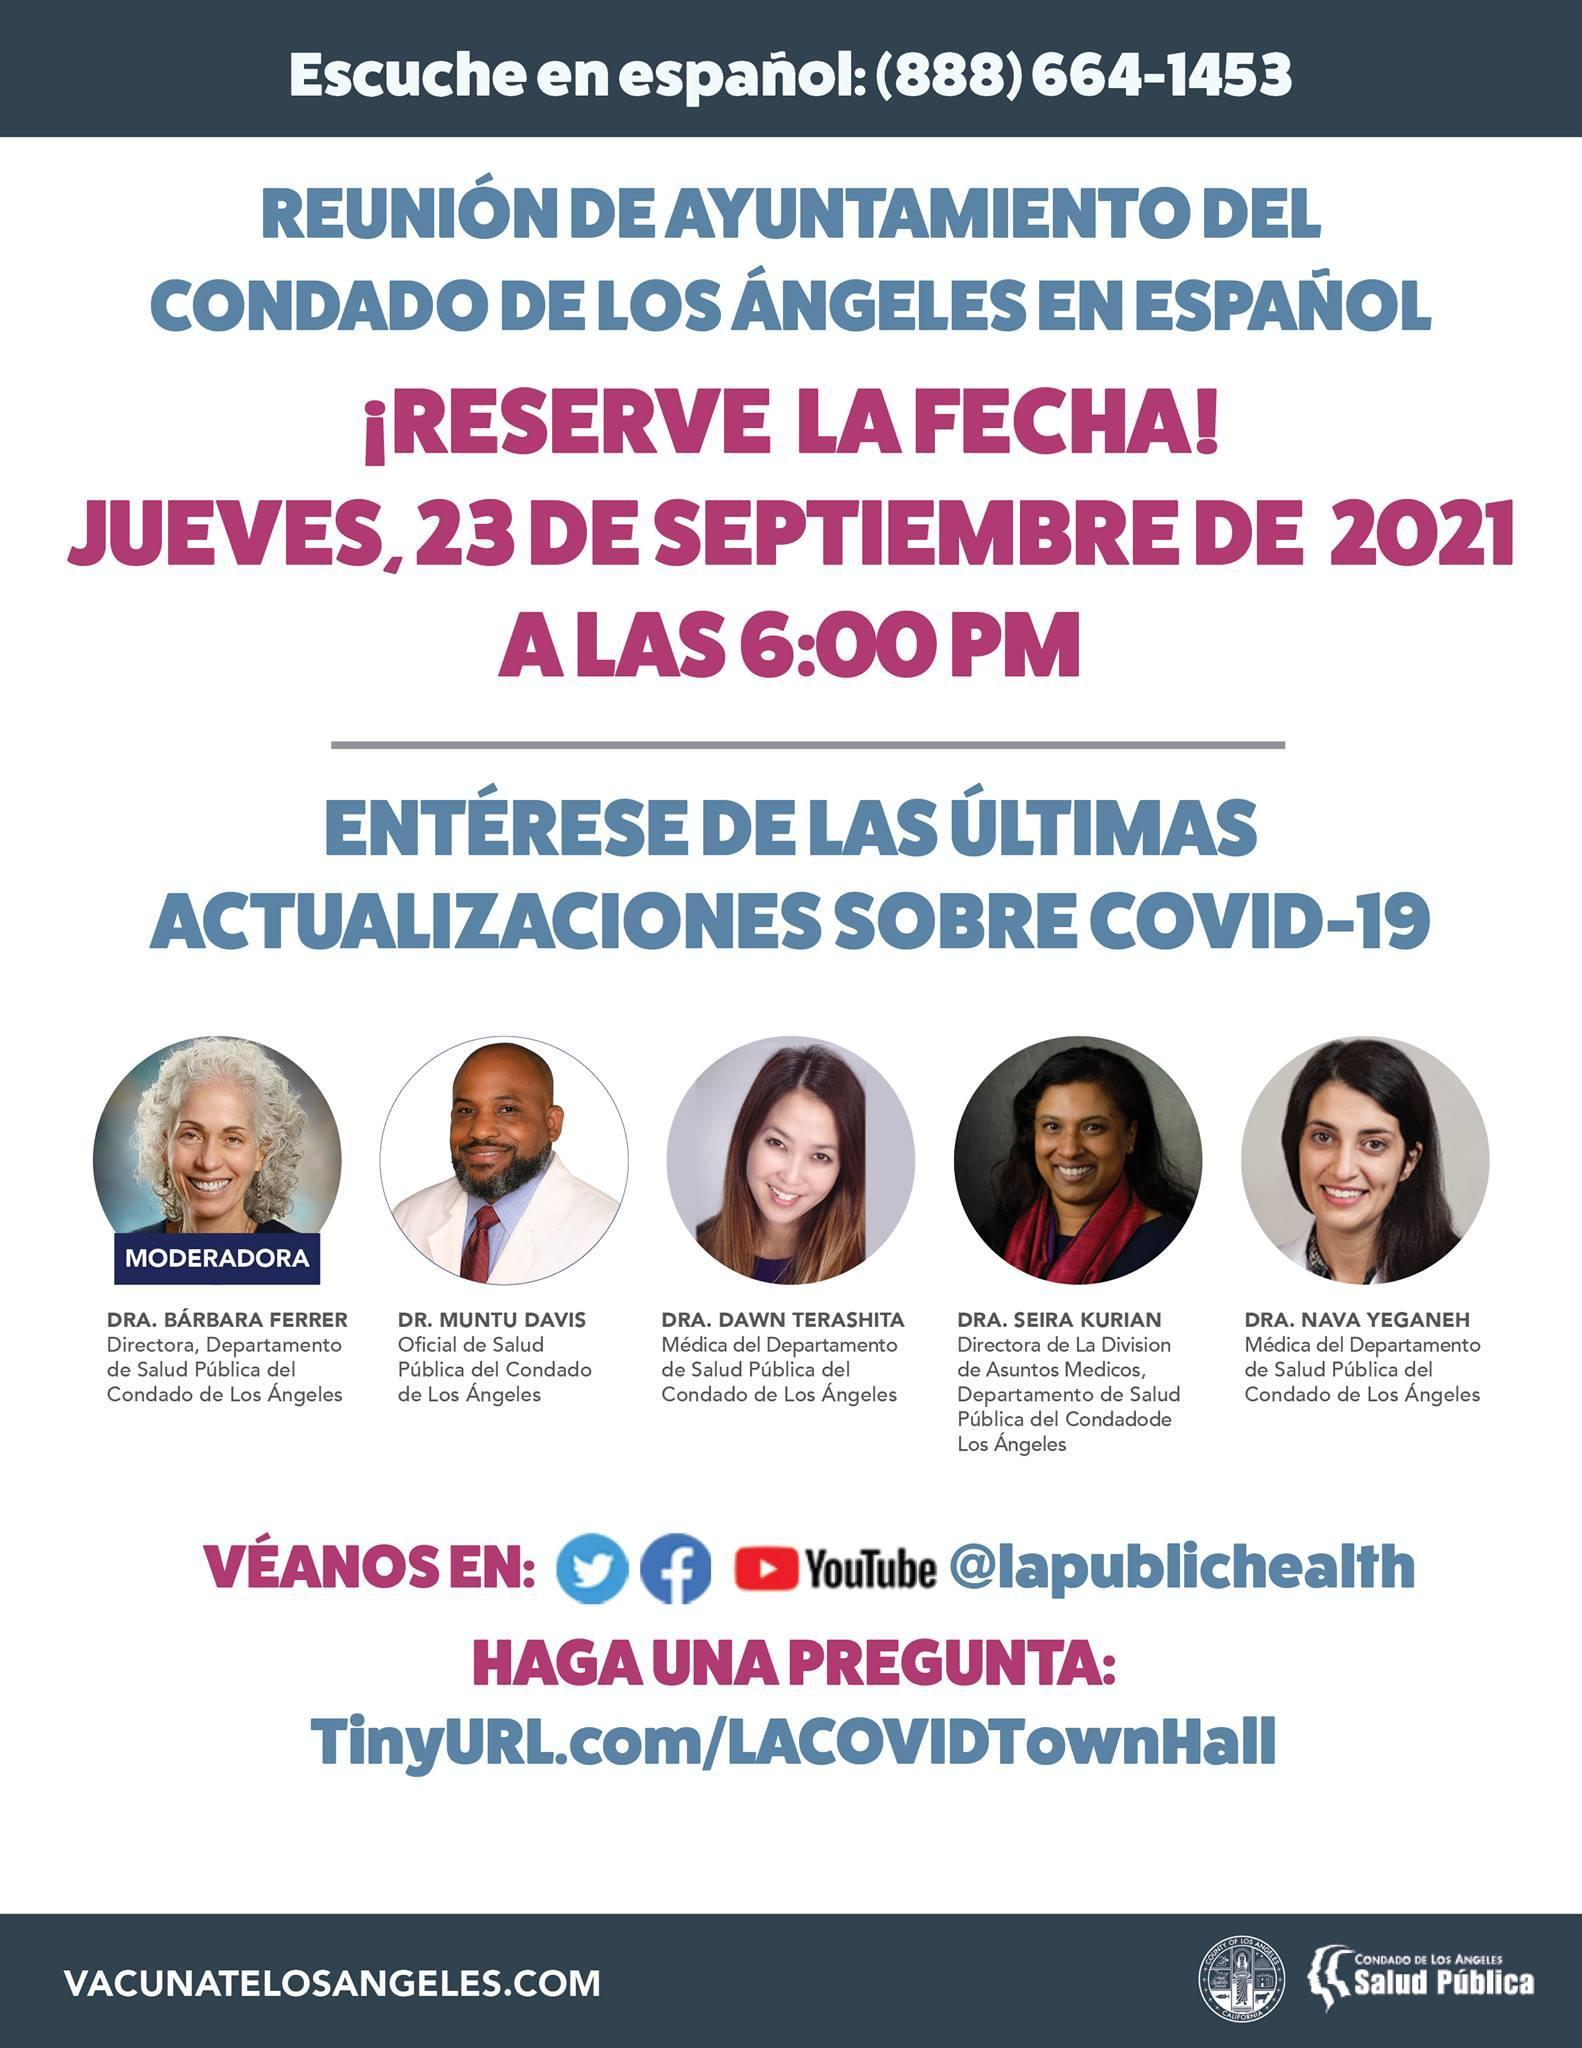 LA County COVID-19 Virtual Town Hall flyer in Spanish stating all the information listed above